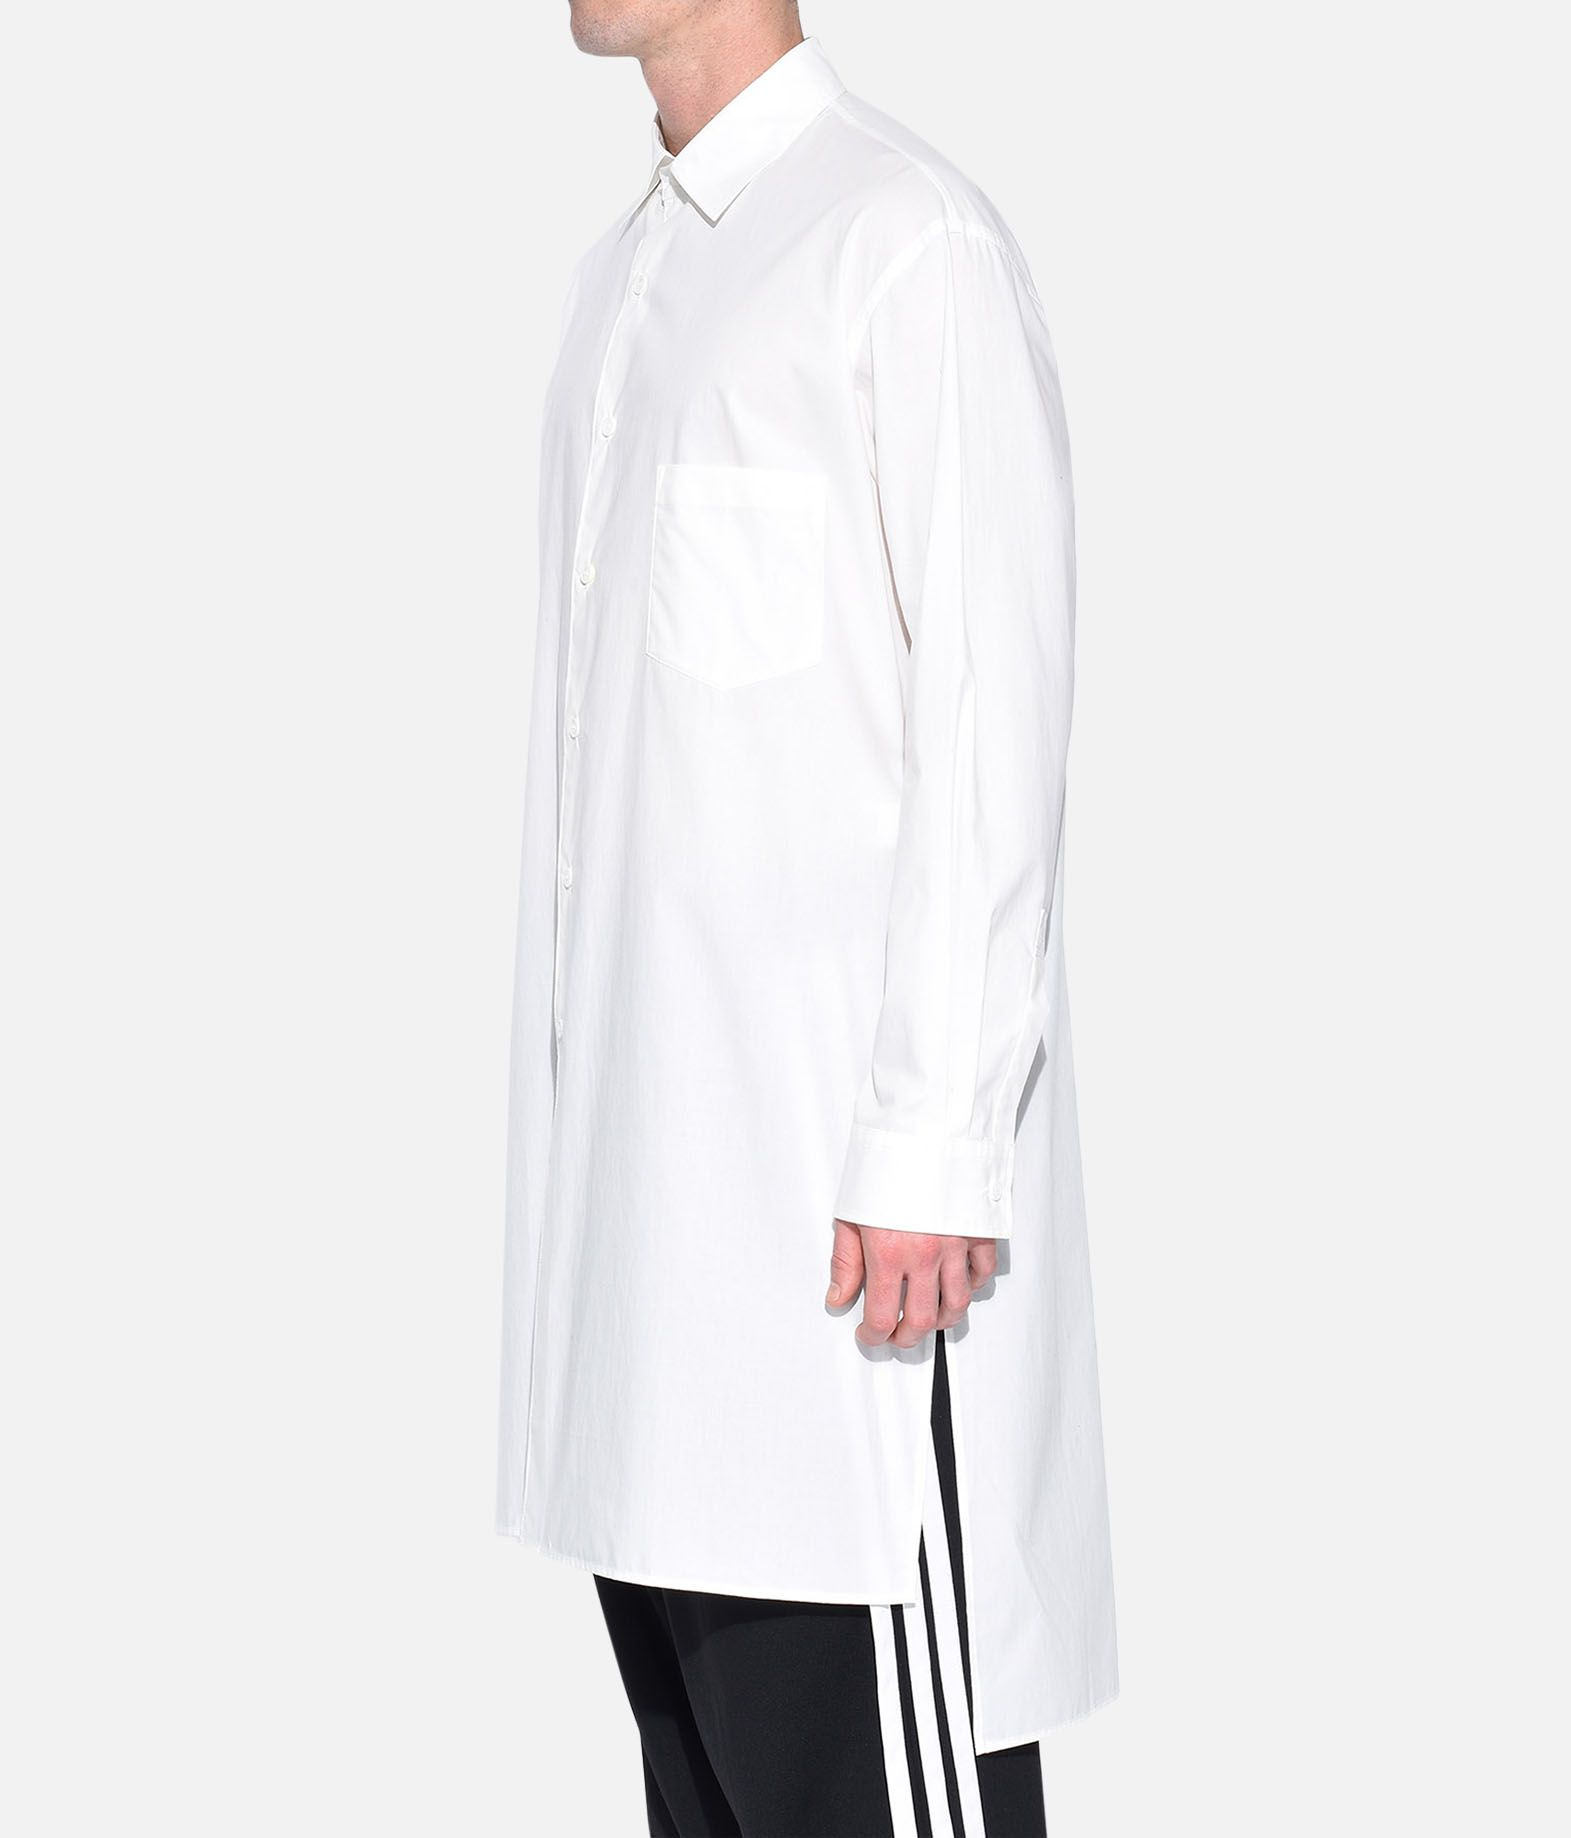 Y-3 Y-3 Stacked Logo Shirt Long sleeve shirt Man e